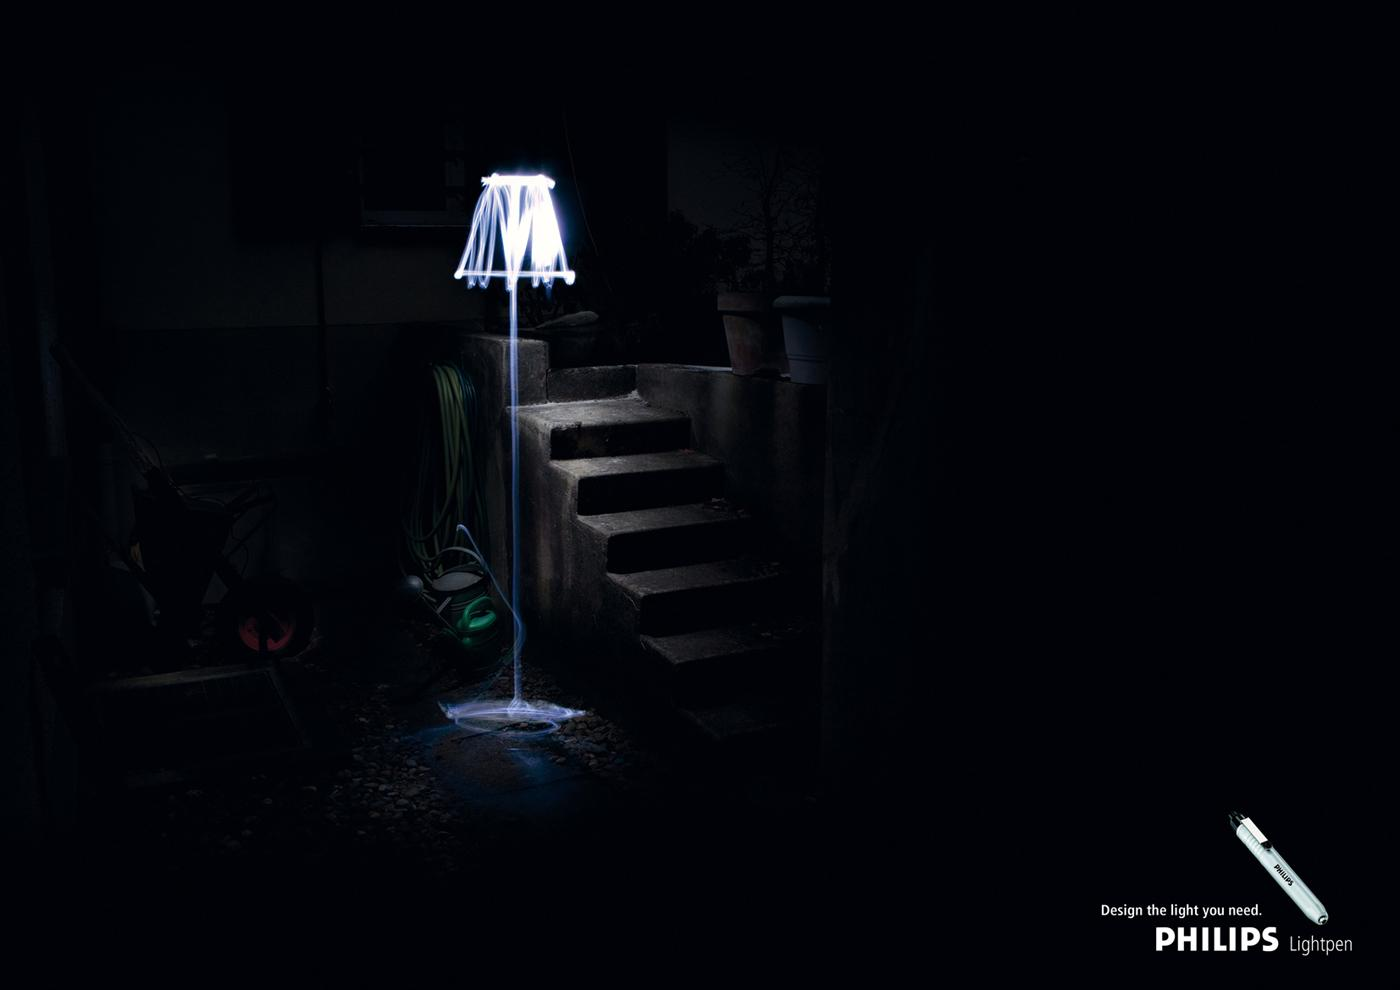 Philips Print Ad -  Design the light you need, 3